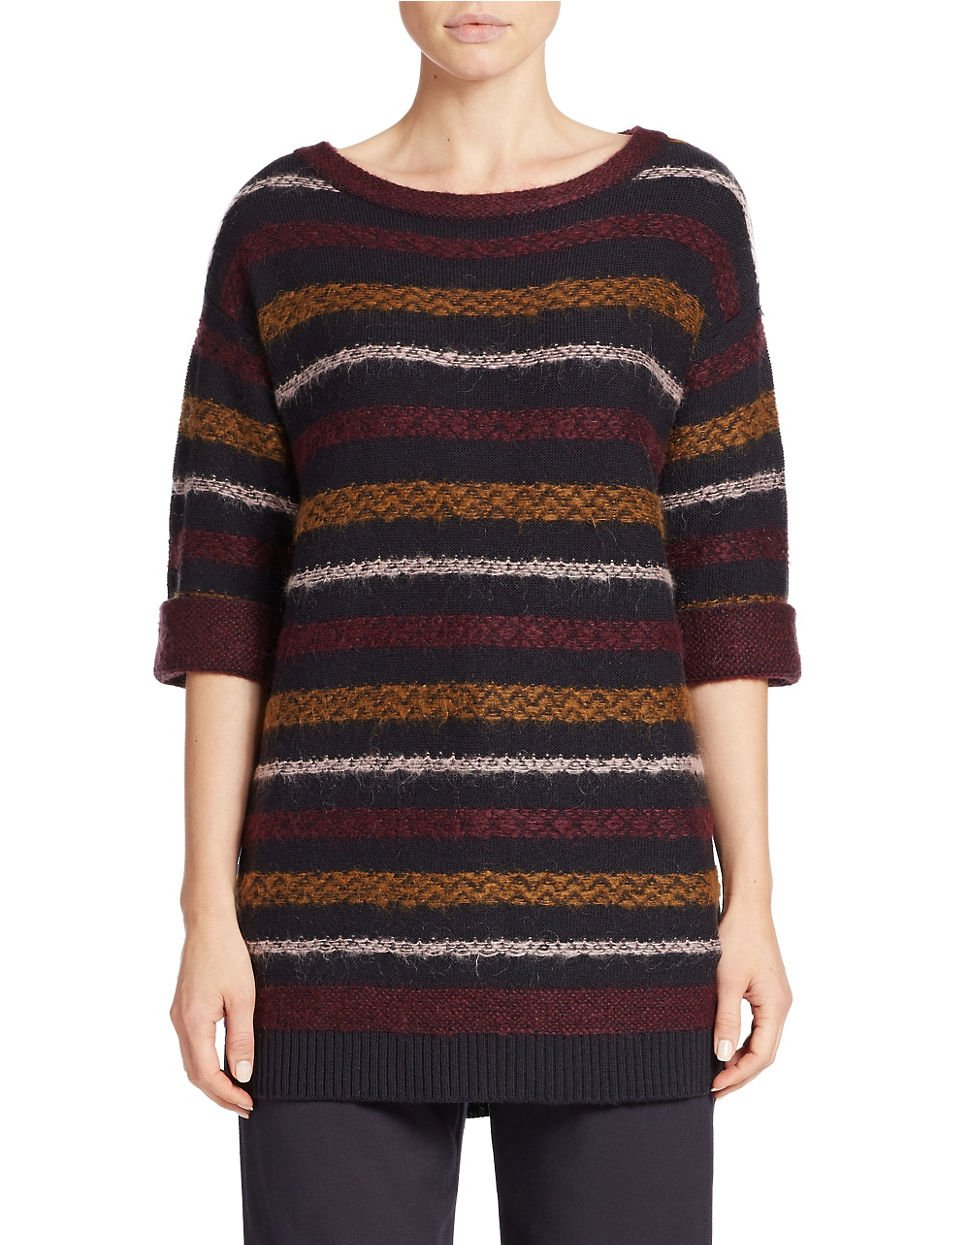 424 fifth Reverse Fair Isle Tunic Sweater | Lyst